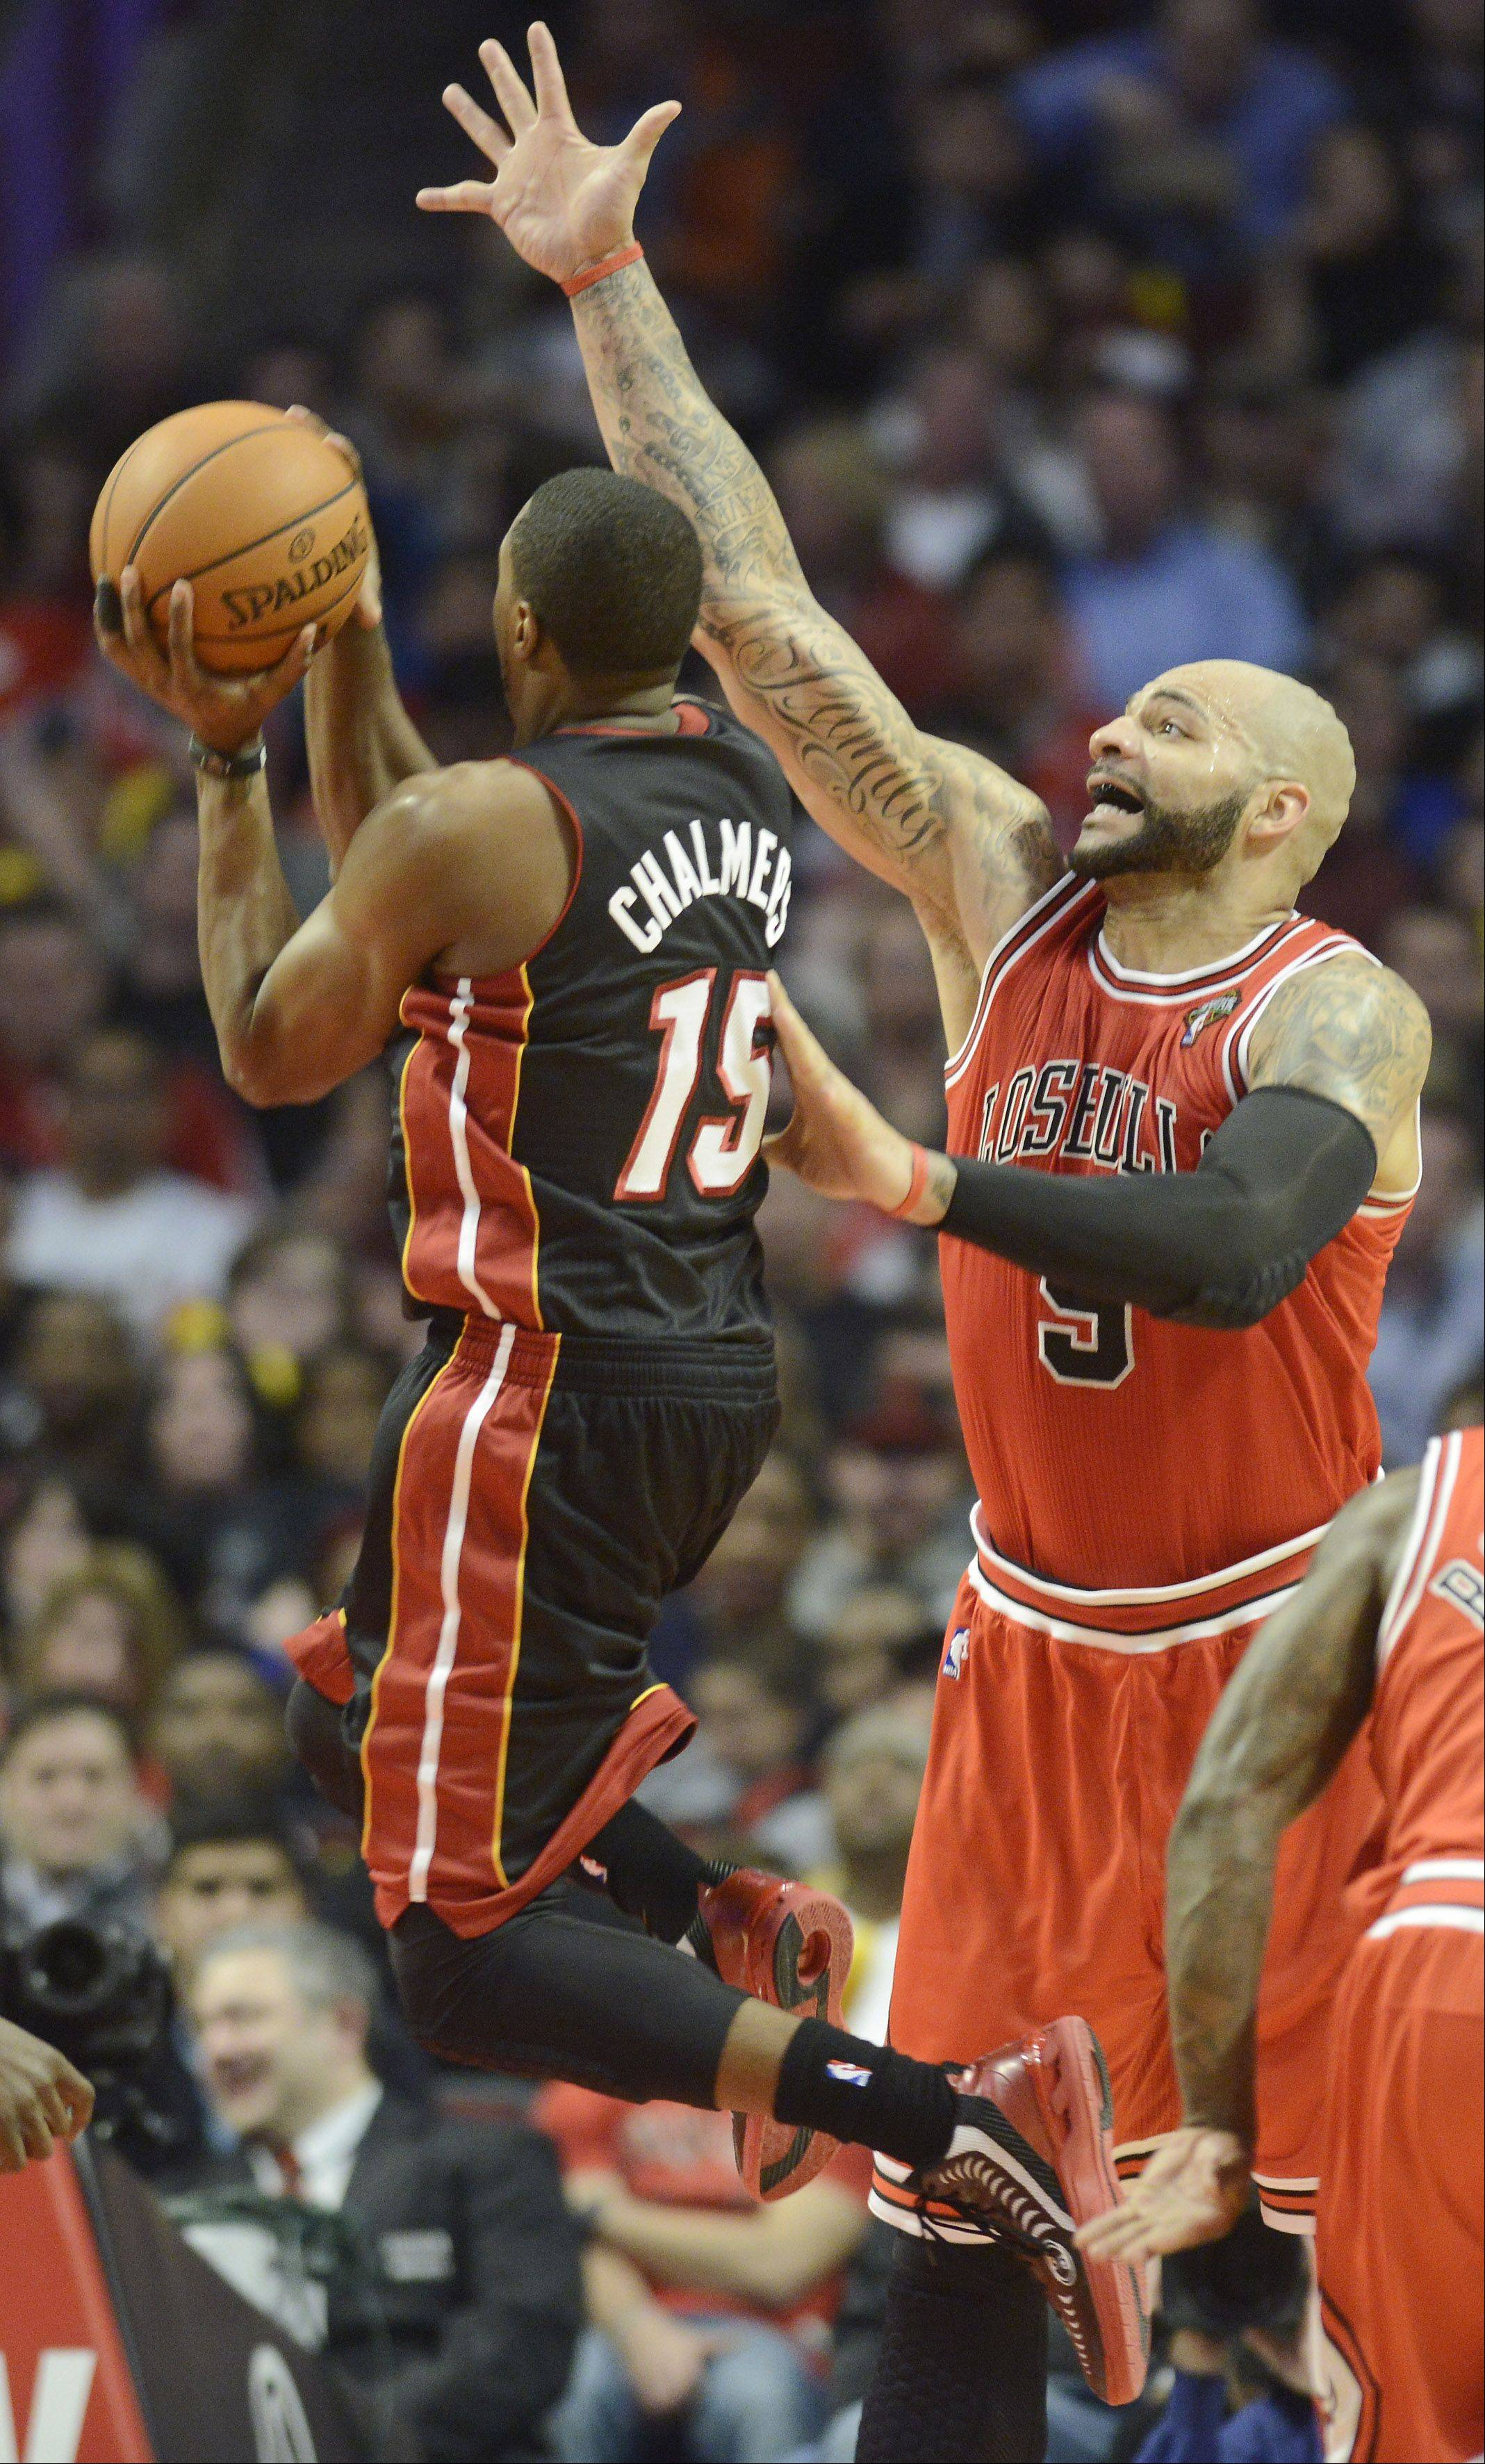 JOE LEWNARD/jlewnard@dailyherald.comCarlos Boozer of the Bulls defends a shot by Mario Chalmers of the Miami Heat.